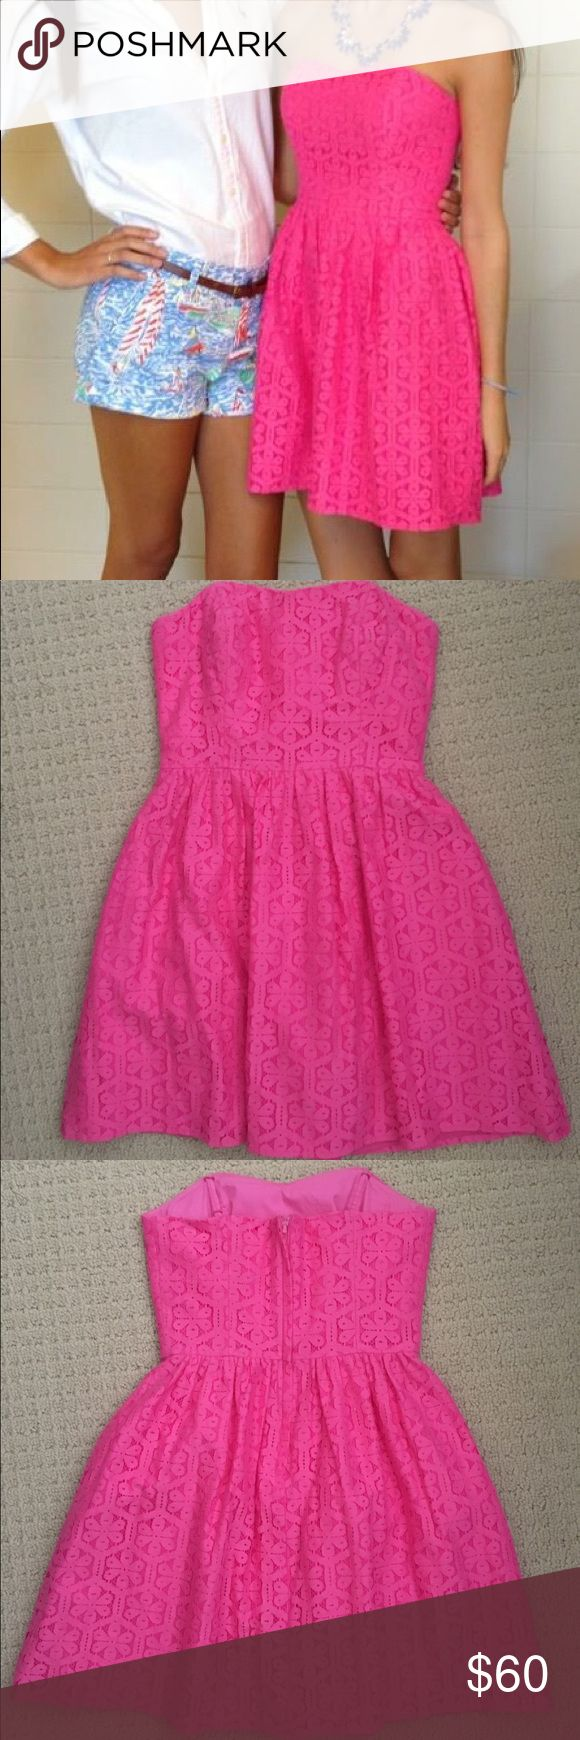 Lilly Pulitzer Strapless Dress Pink eyelet dress perfect for summer and spring! Corset lined on the inside to help the dress stay up. Only worn once and is a size 00. (Lilly Pulitzer Nautical Shorts on left located on my profile for sale also) Lilly Pulitzer Dresses Strapless